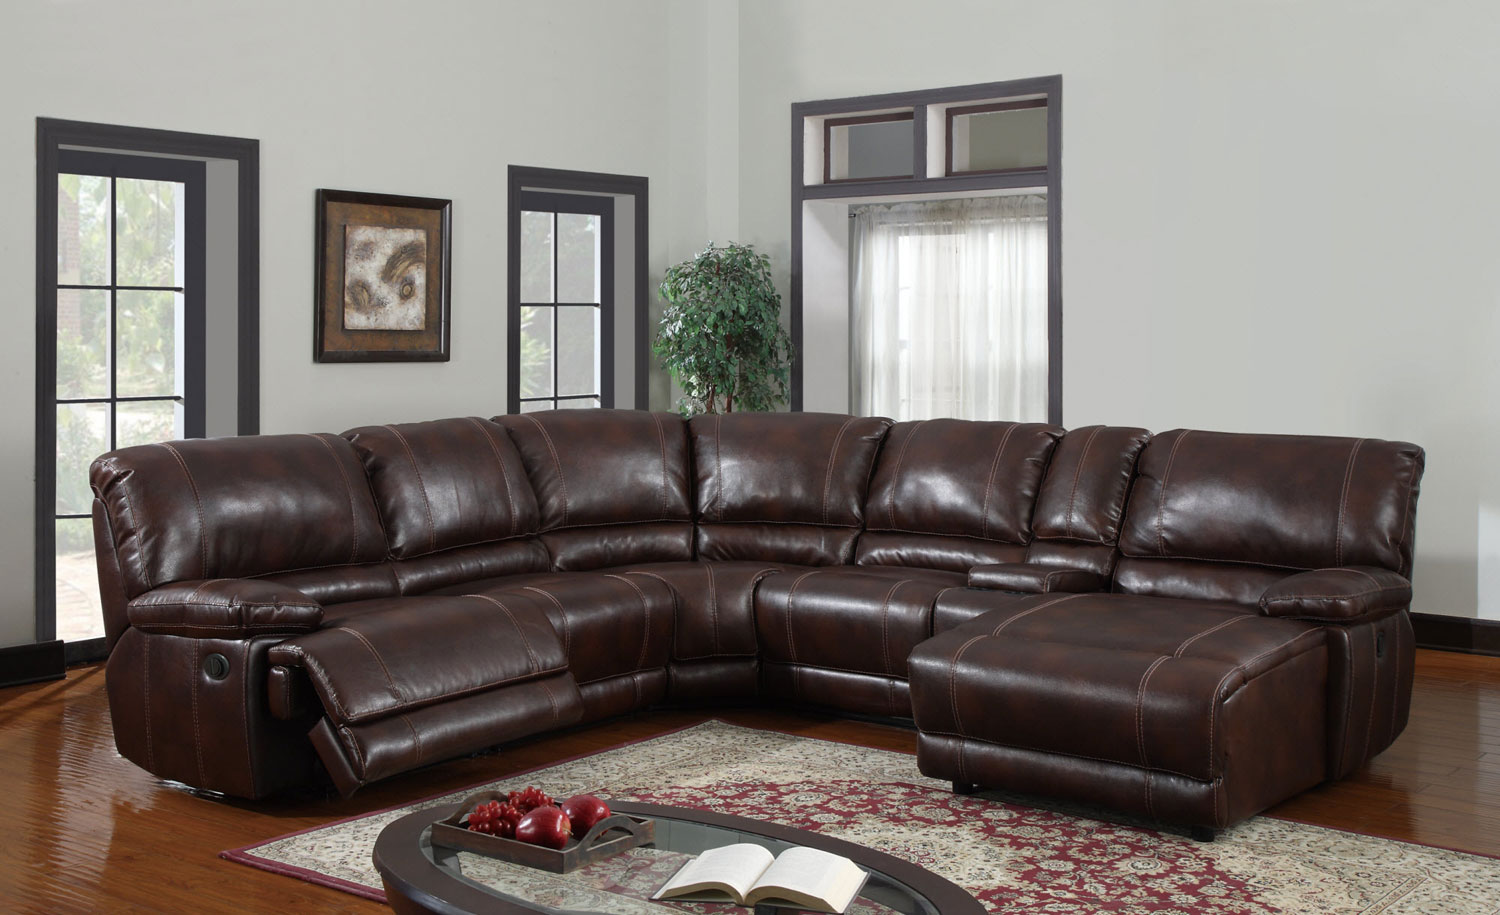 Exceptional Global Furniture USA 1953 Power Reclining Sectional Sofa Set   Bonded  Leather   Brown